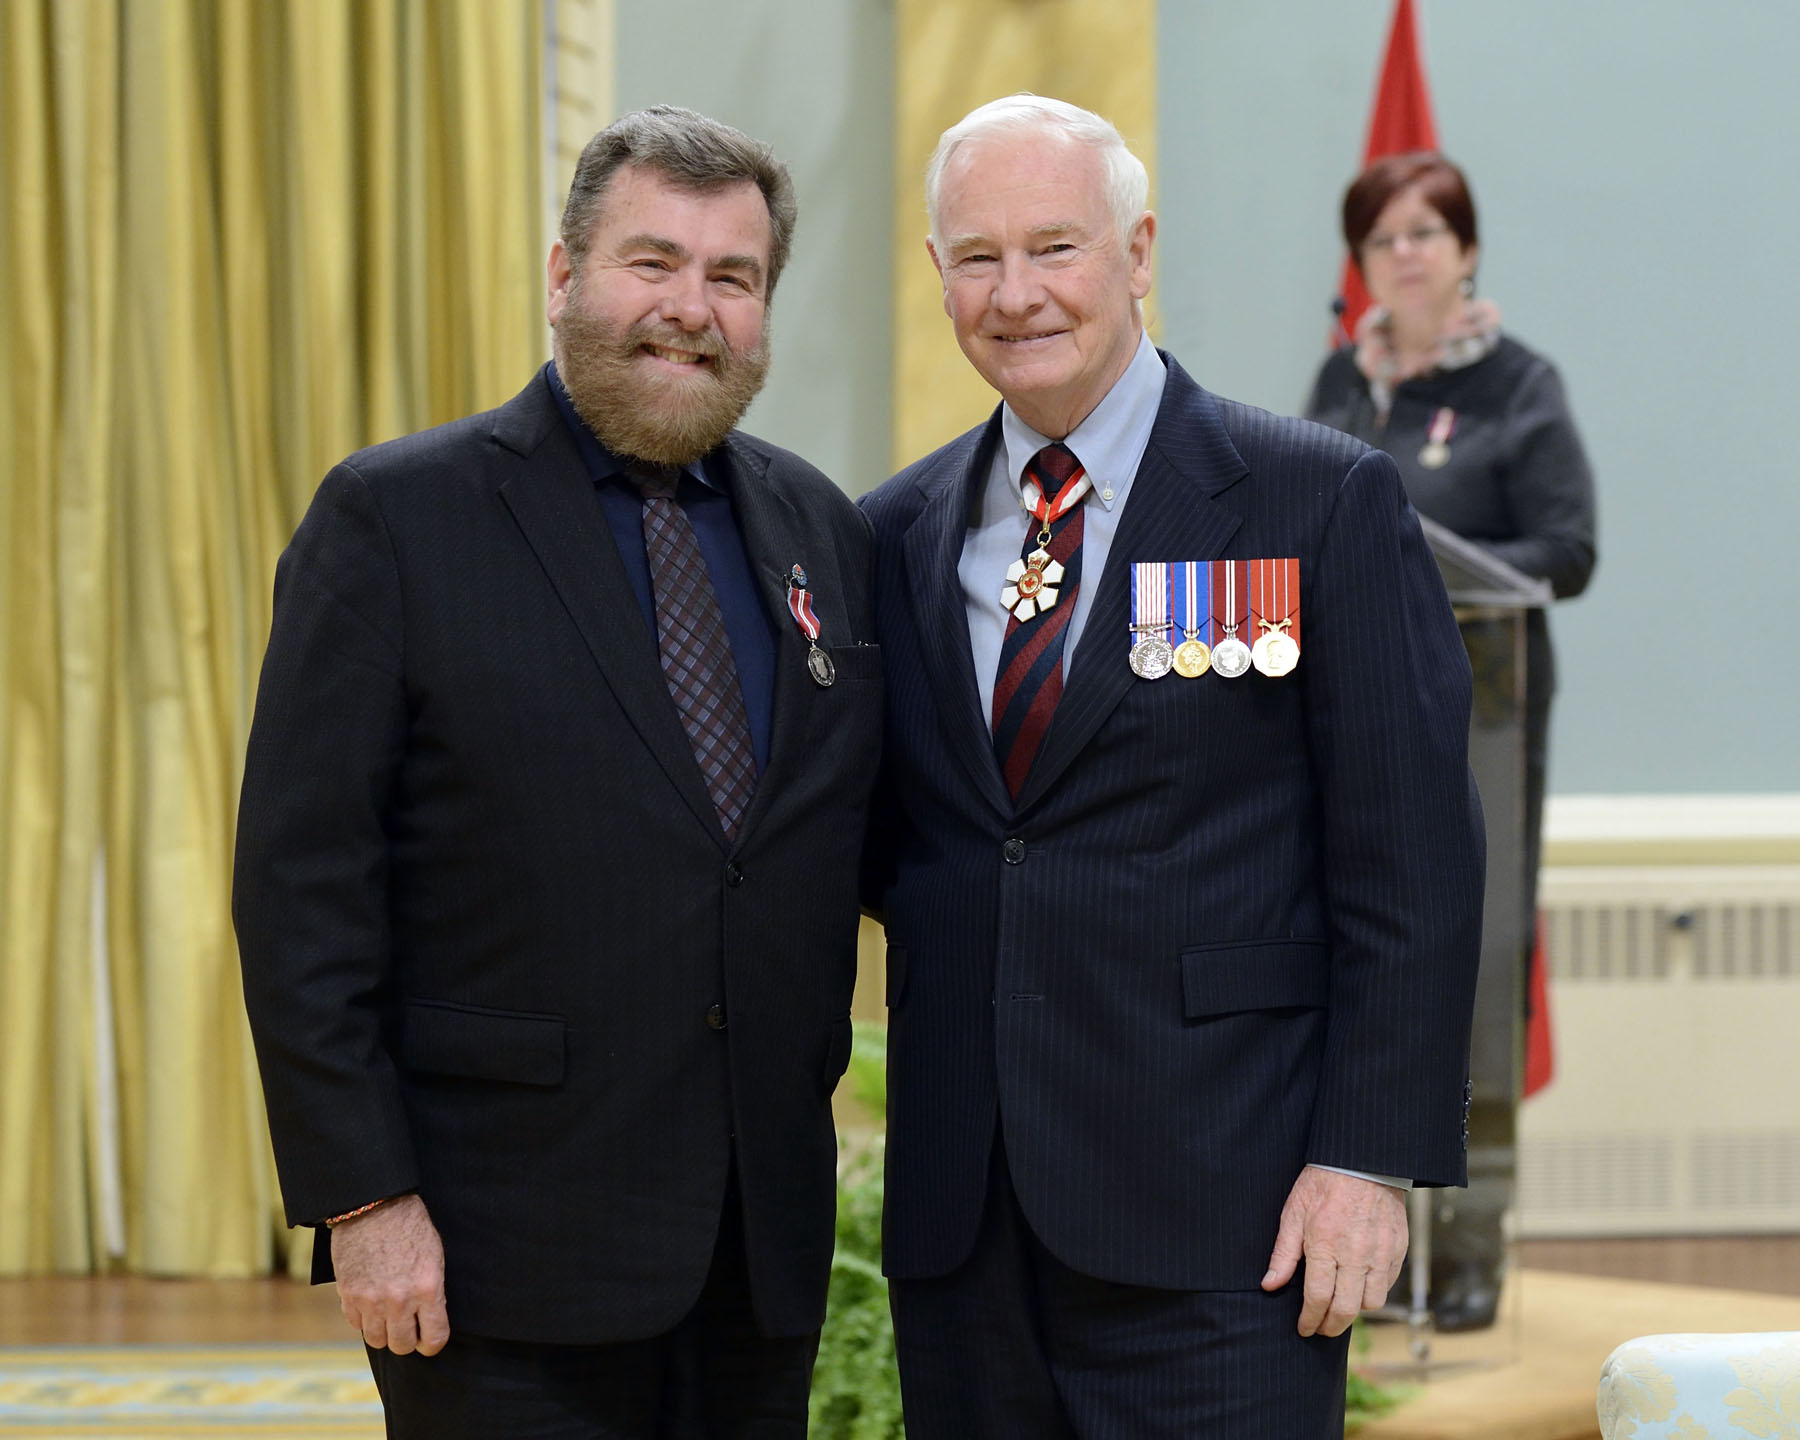 Gary Agnew (Calgary Alberta) is Alberta chair of the Canadian Forces Liaison Council. He also provides volunteer leadership and support to many organizations and global causes, including the Calgary Zoological Society.